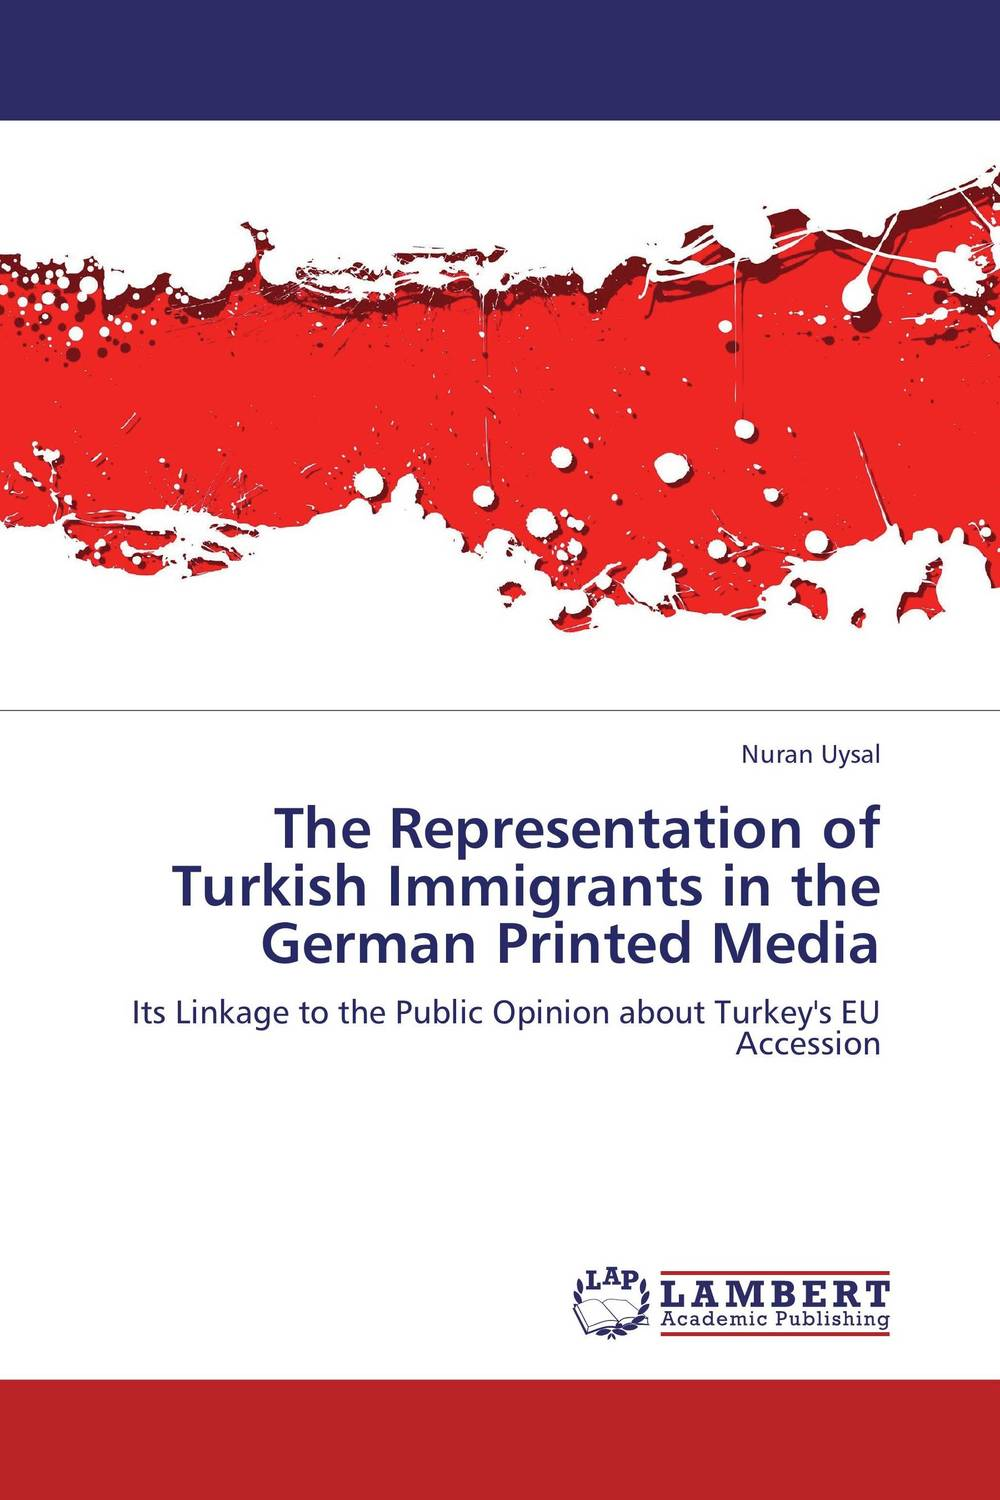 The Representation of Turkish Immigrants in the German Printed Media doug young the party line how the media dictates public opinion in modern china